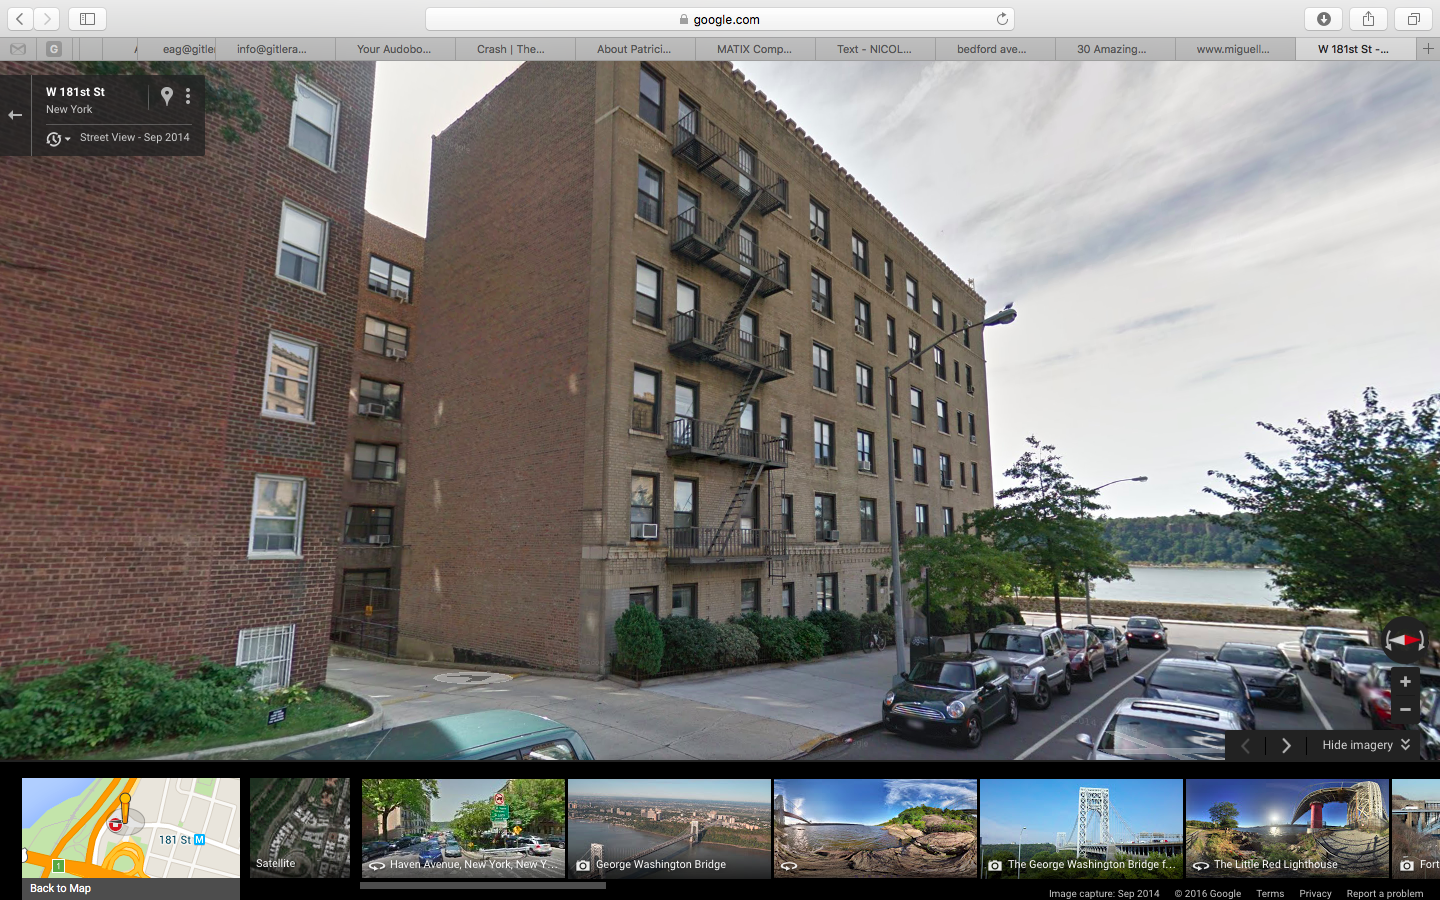 181 haven and riverside (880 w181st) 2/3